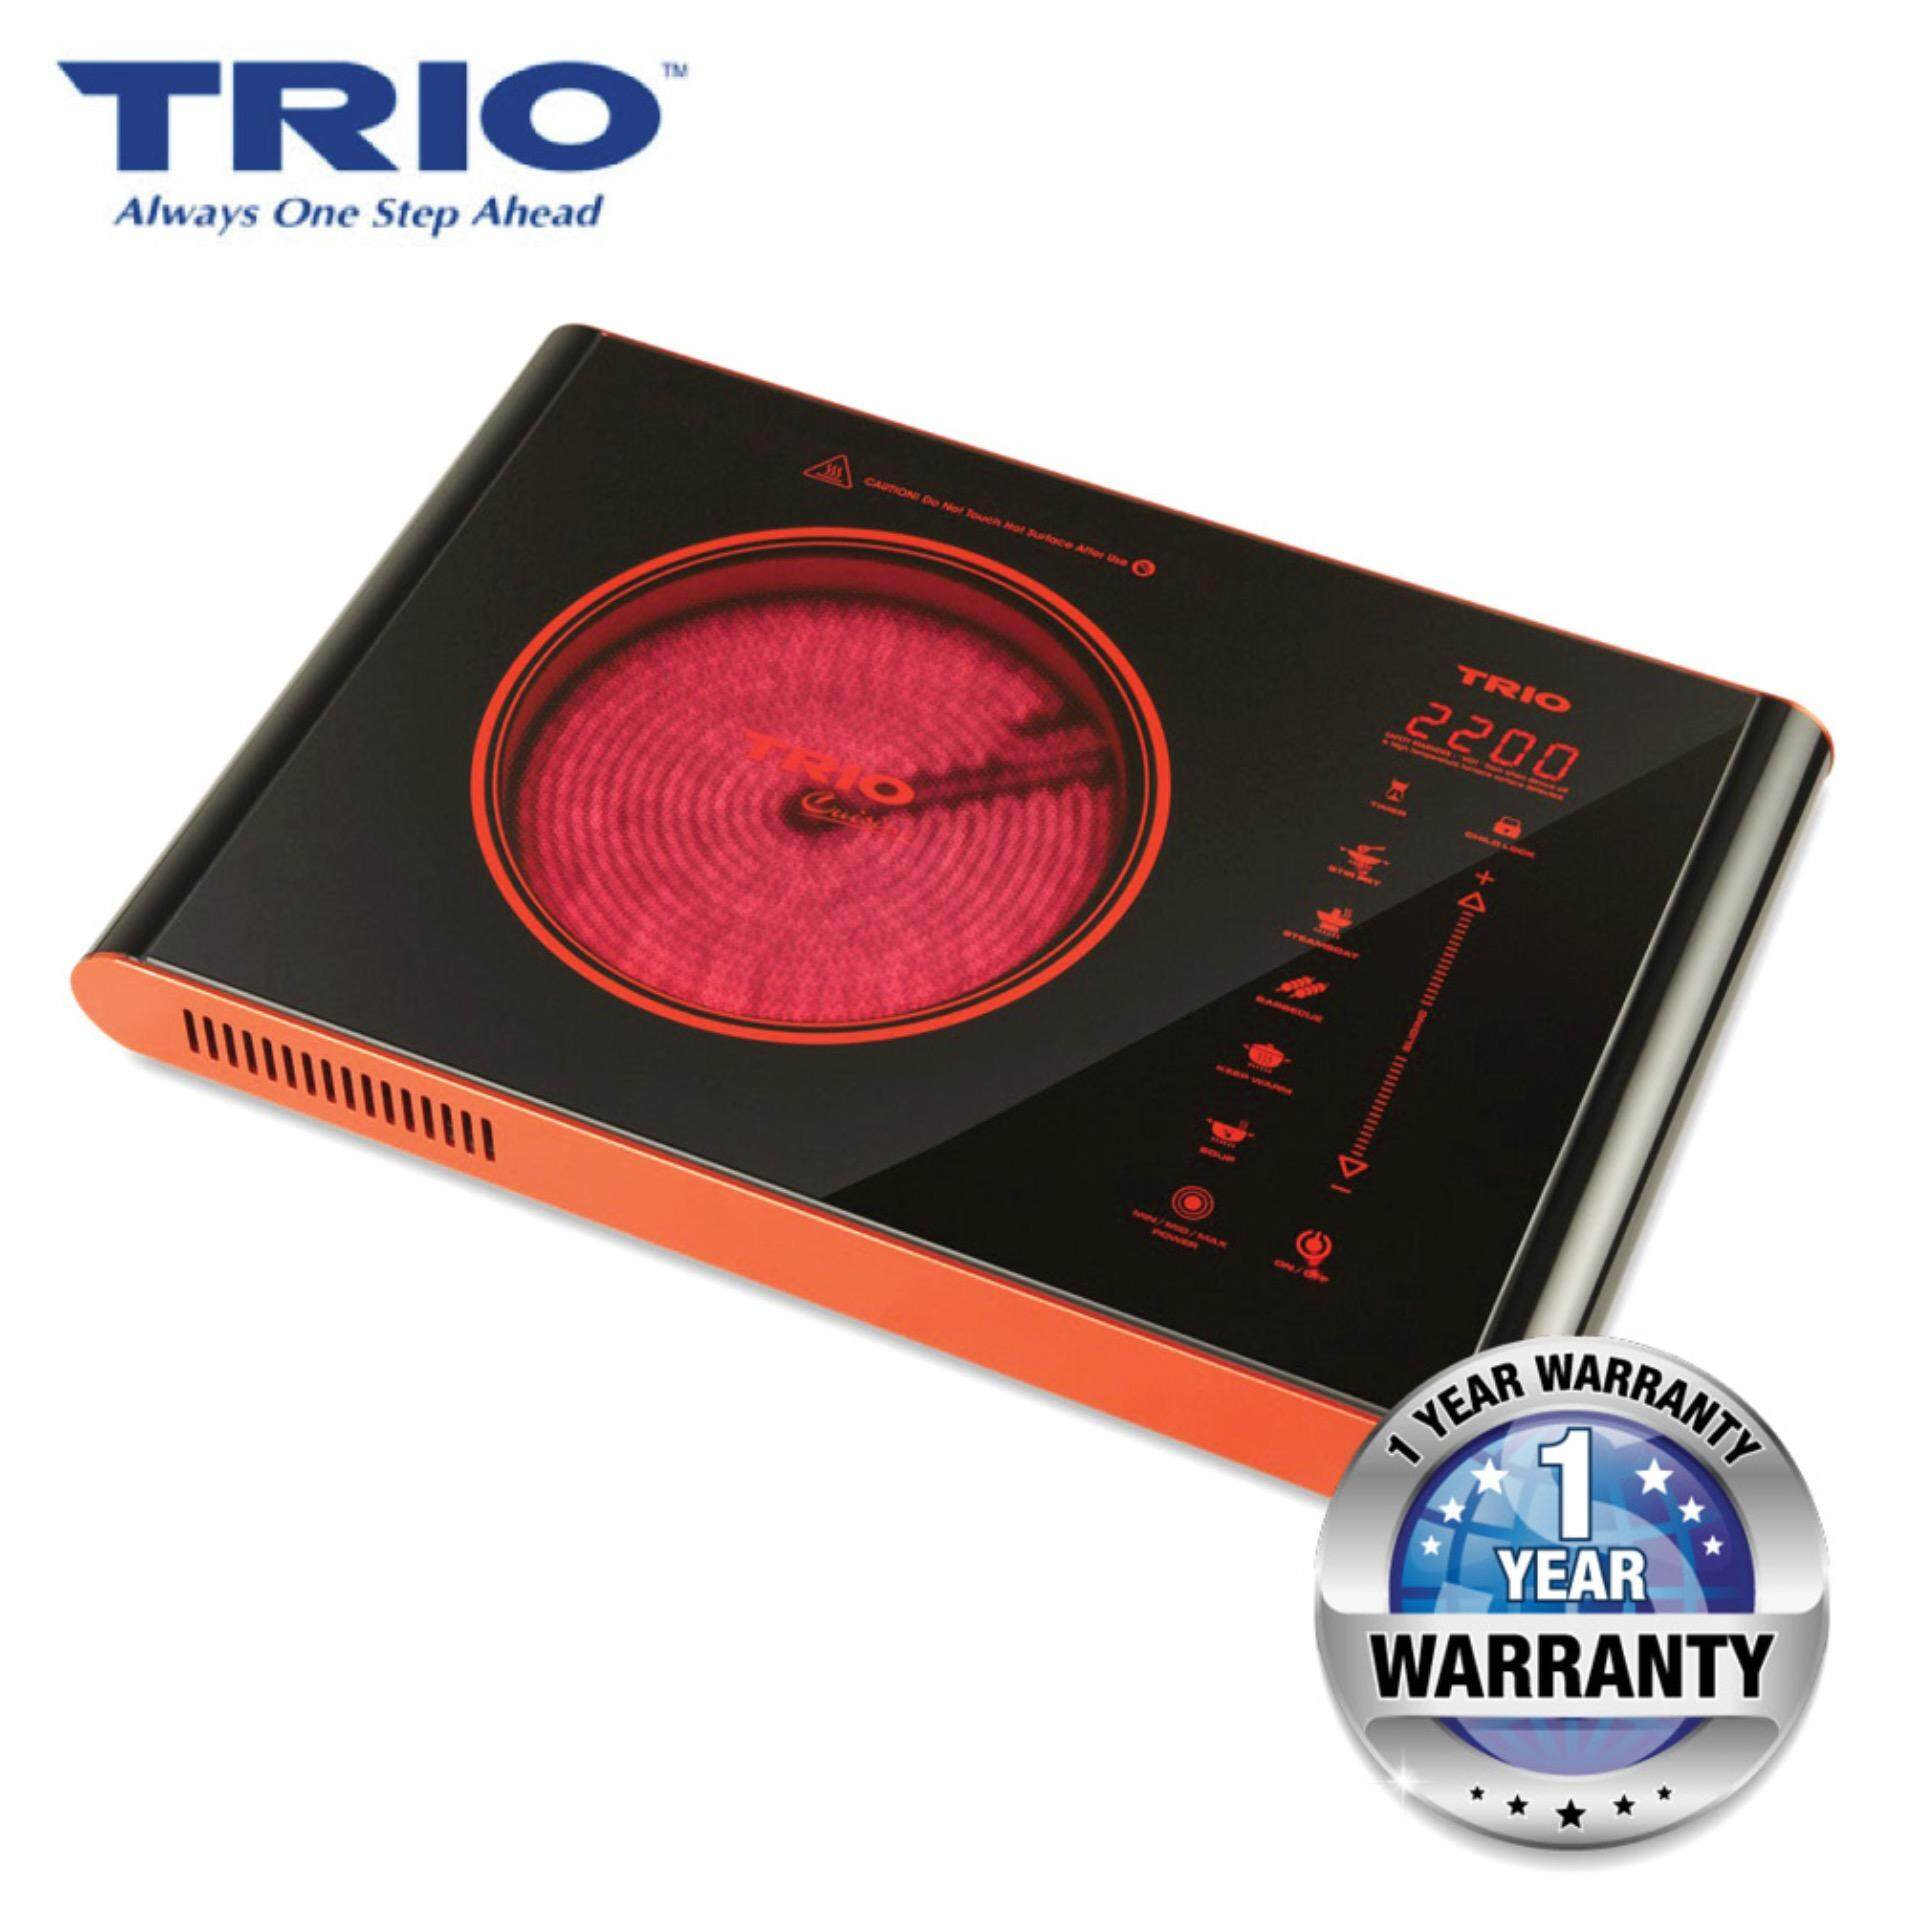 TRIO TCR-20 Ceramic Cooker with 5 Various Cooking Preset Functions